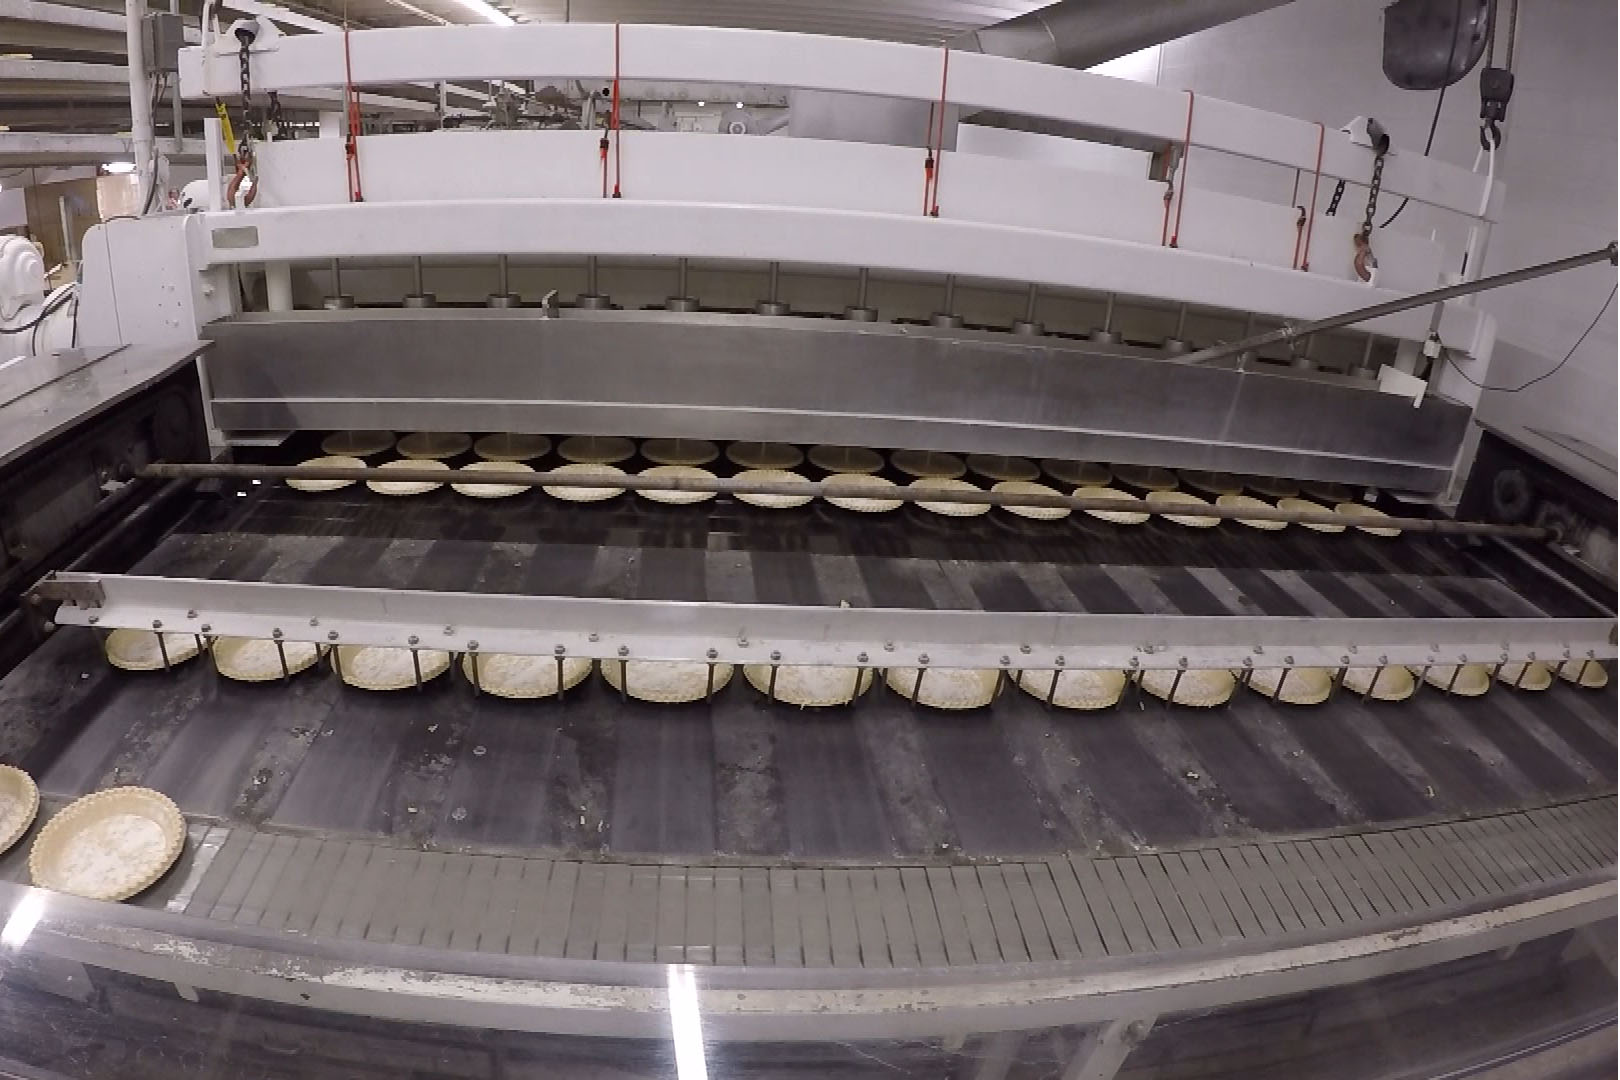 The pies are lined up in rows of 14, then pushed into the oven. A machine pours sugar cream pie filling into the shells as they enter the oven.